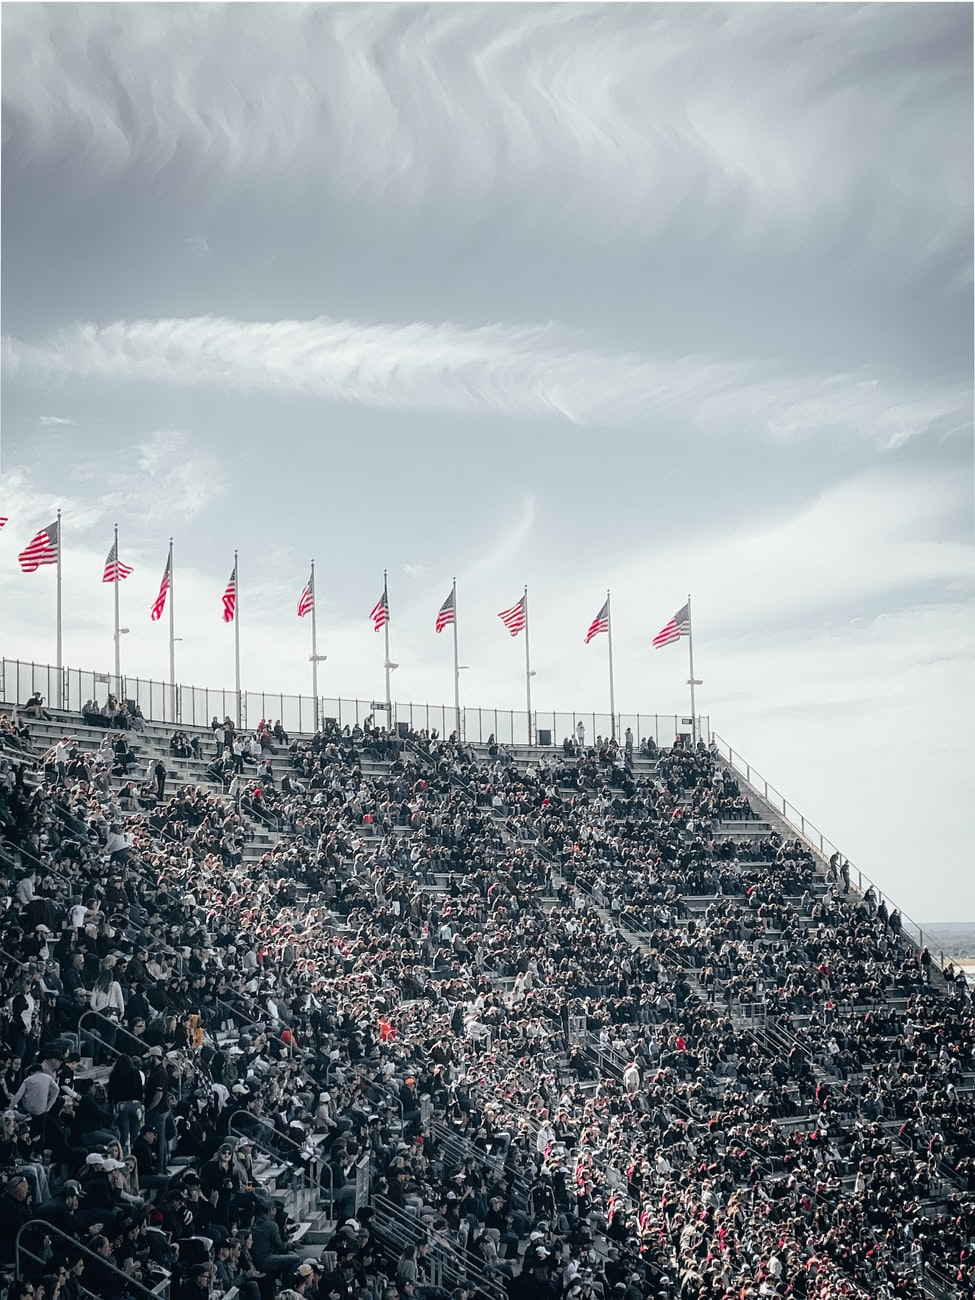 a stadium of sport fans in College Station, TX